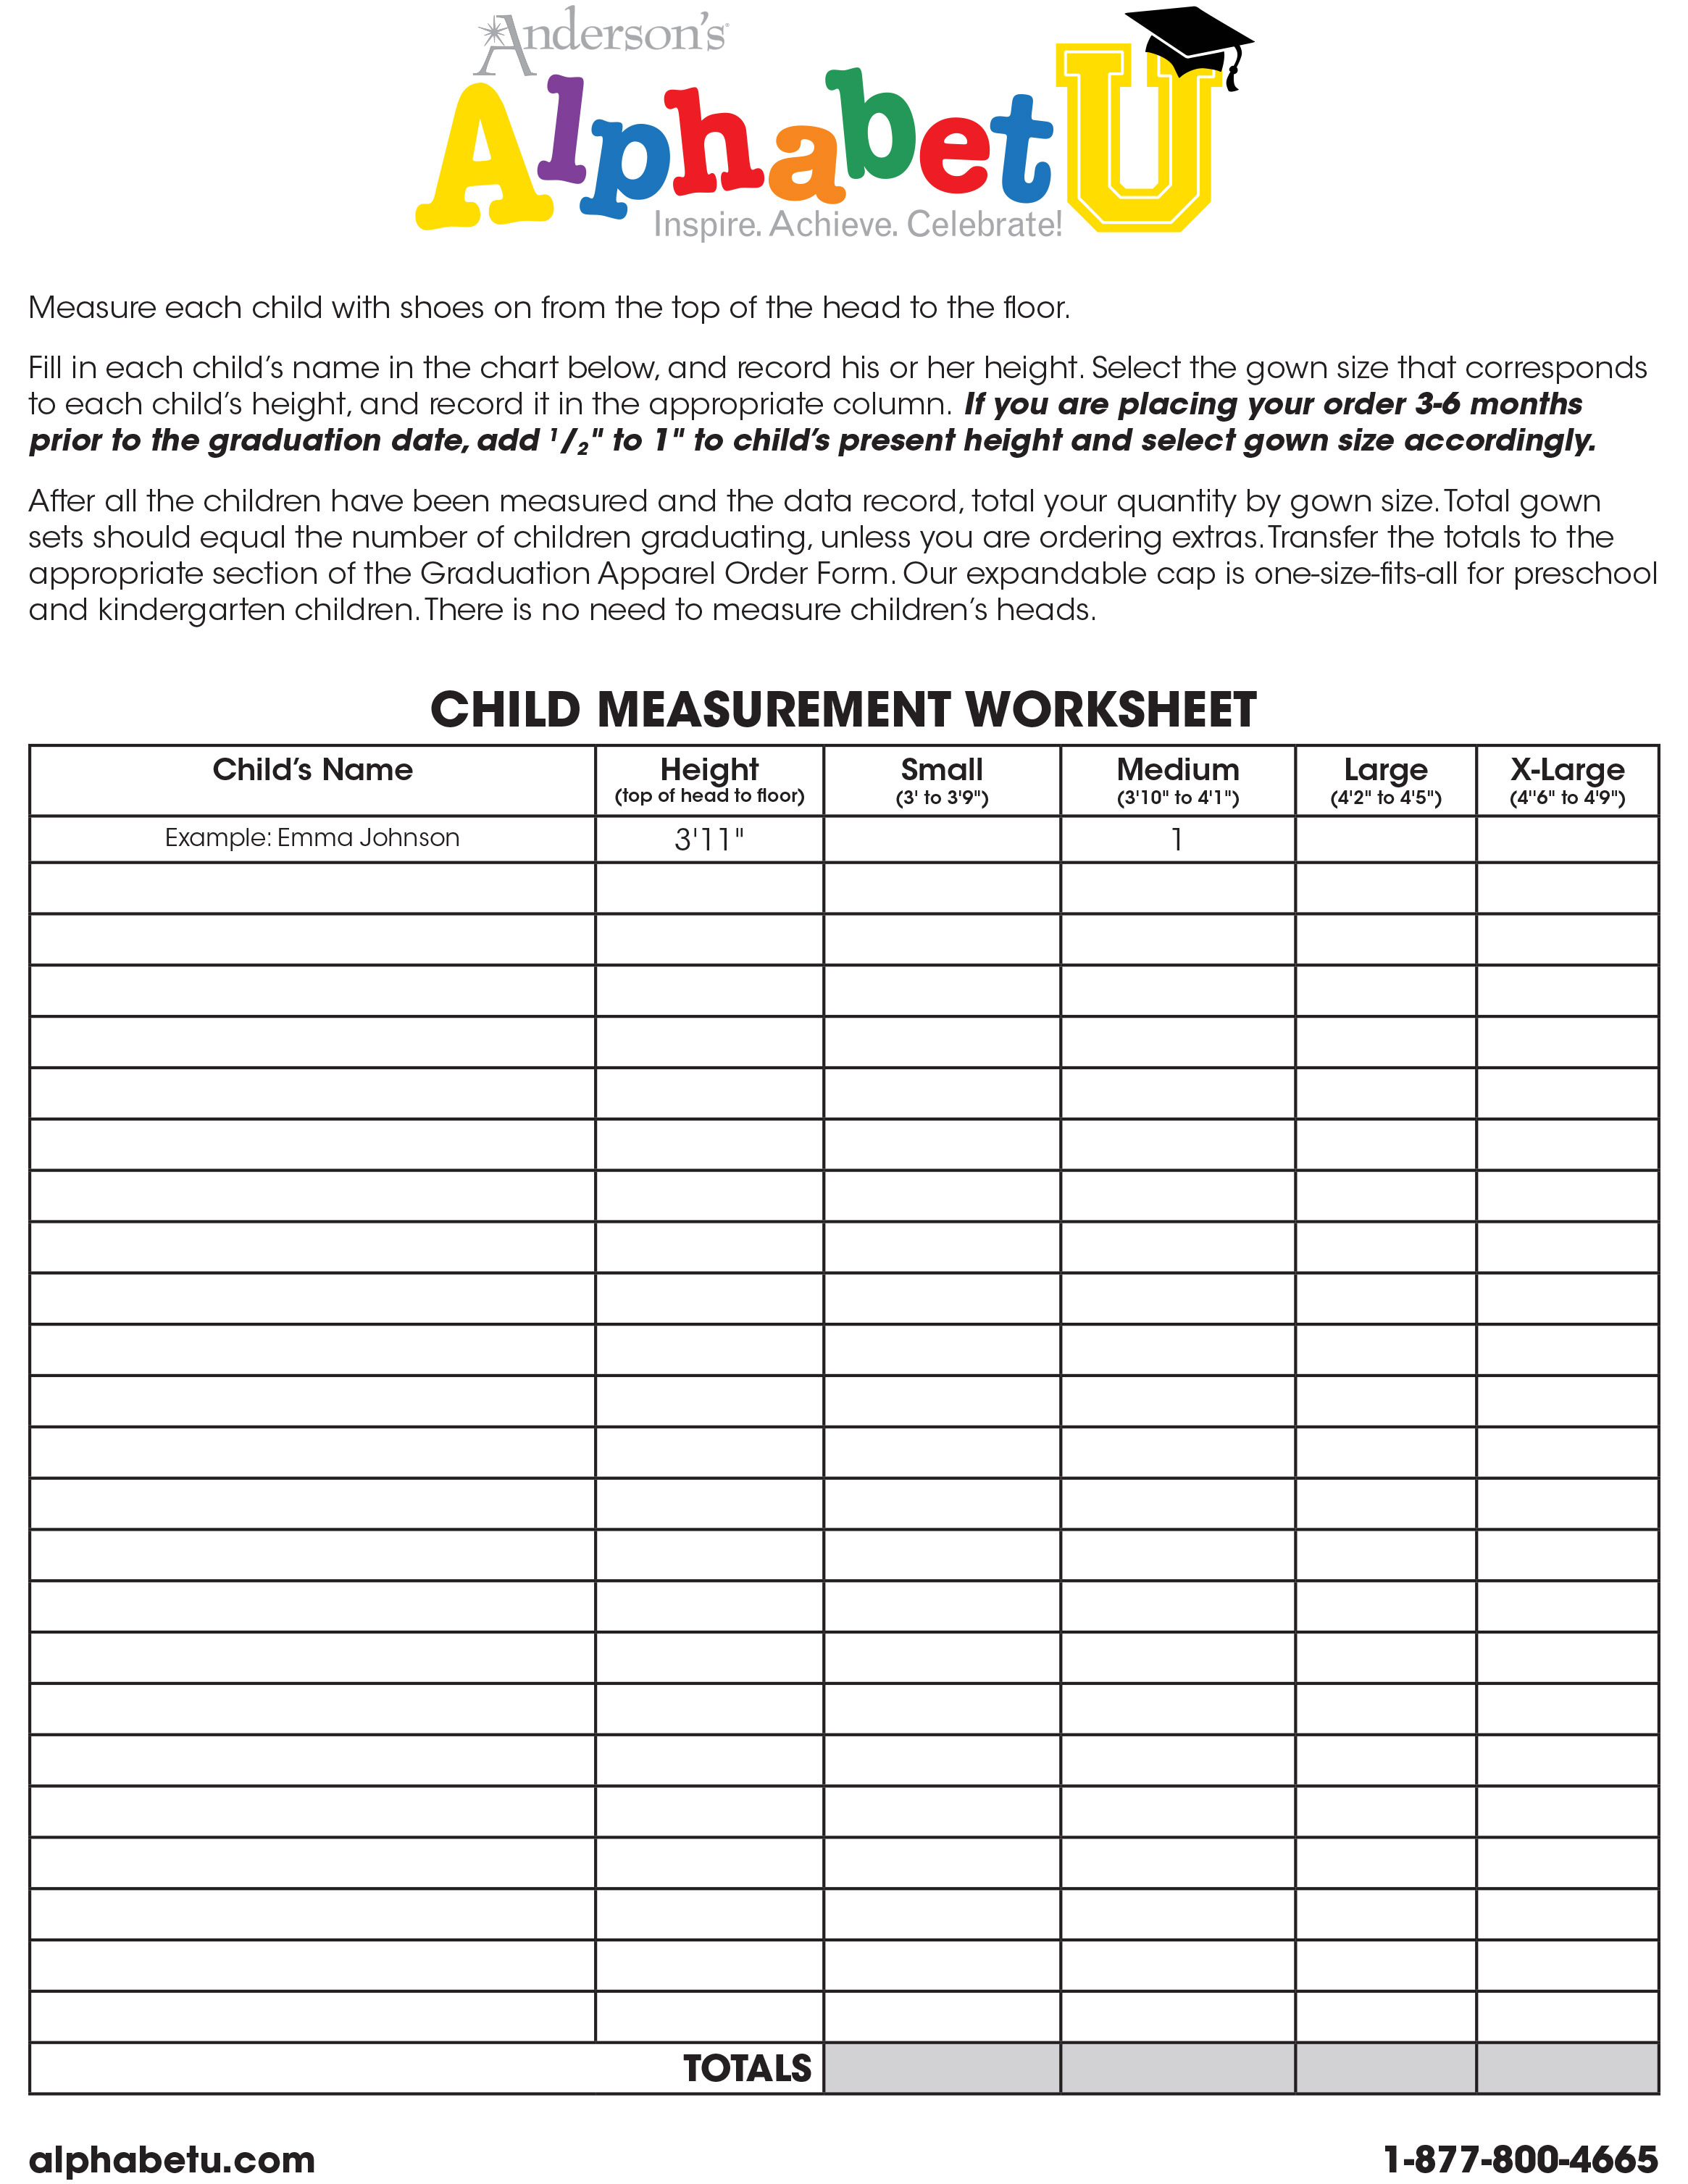 Child Measurement Worksheet